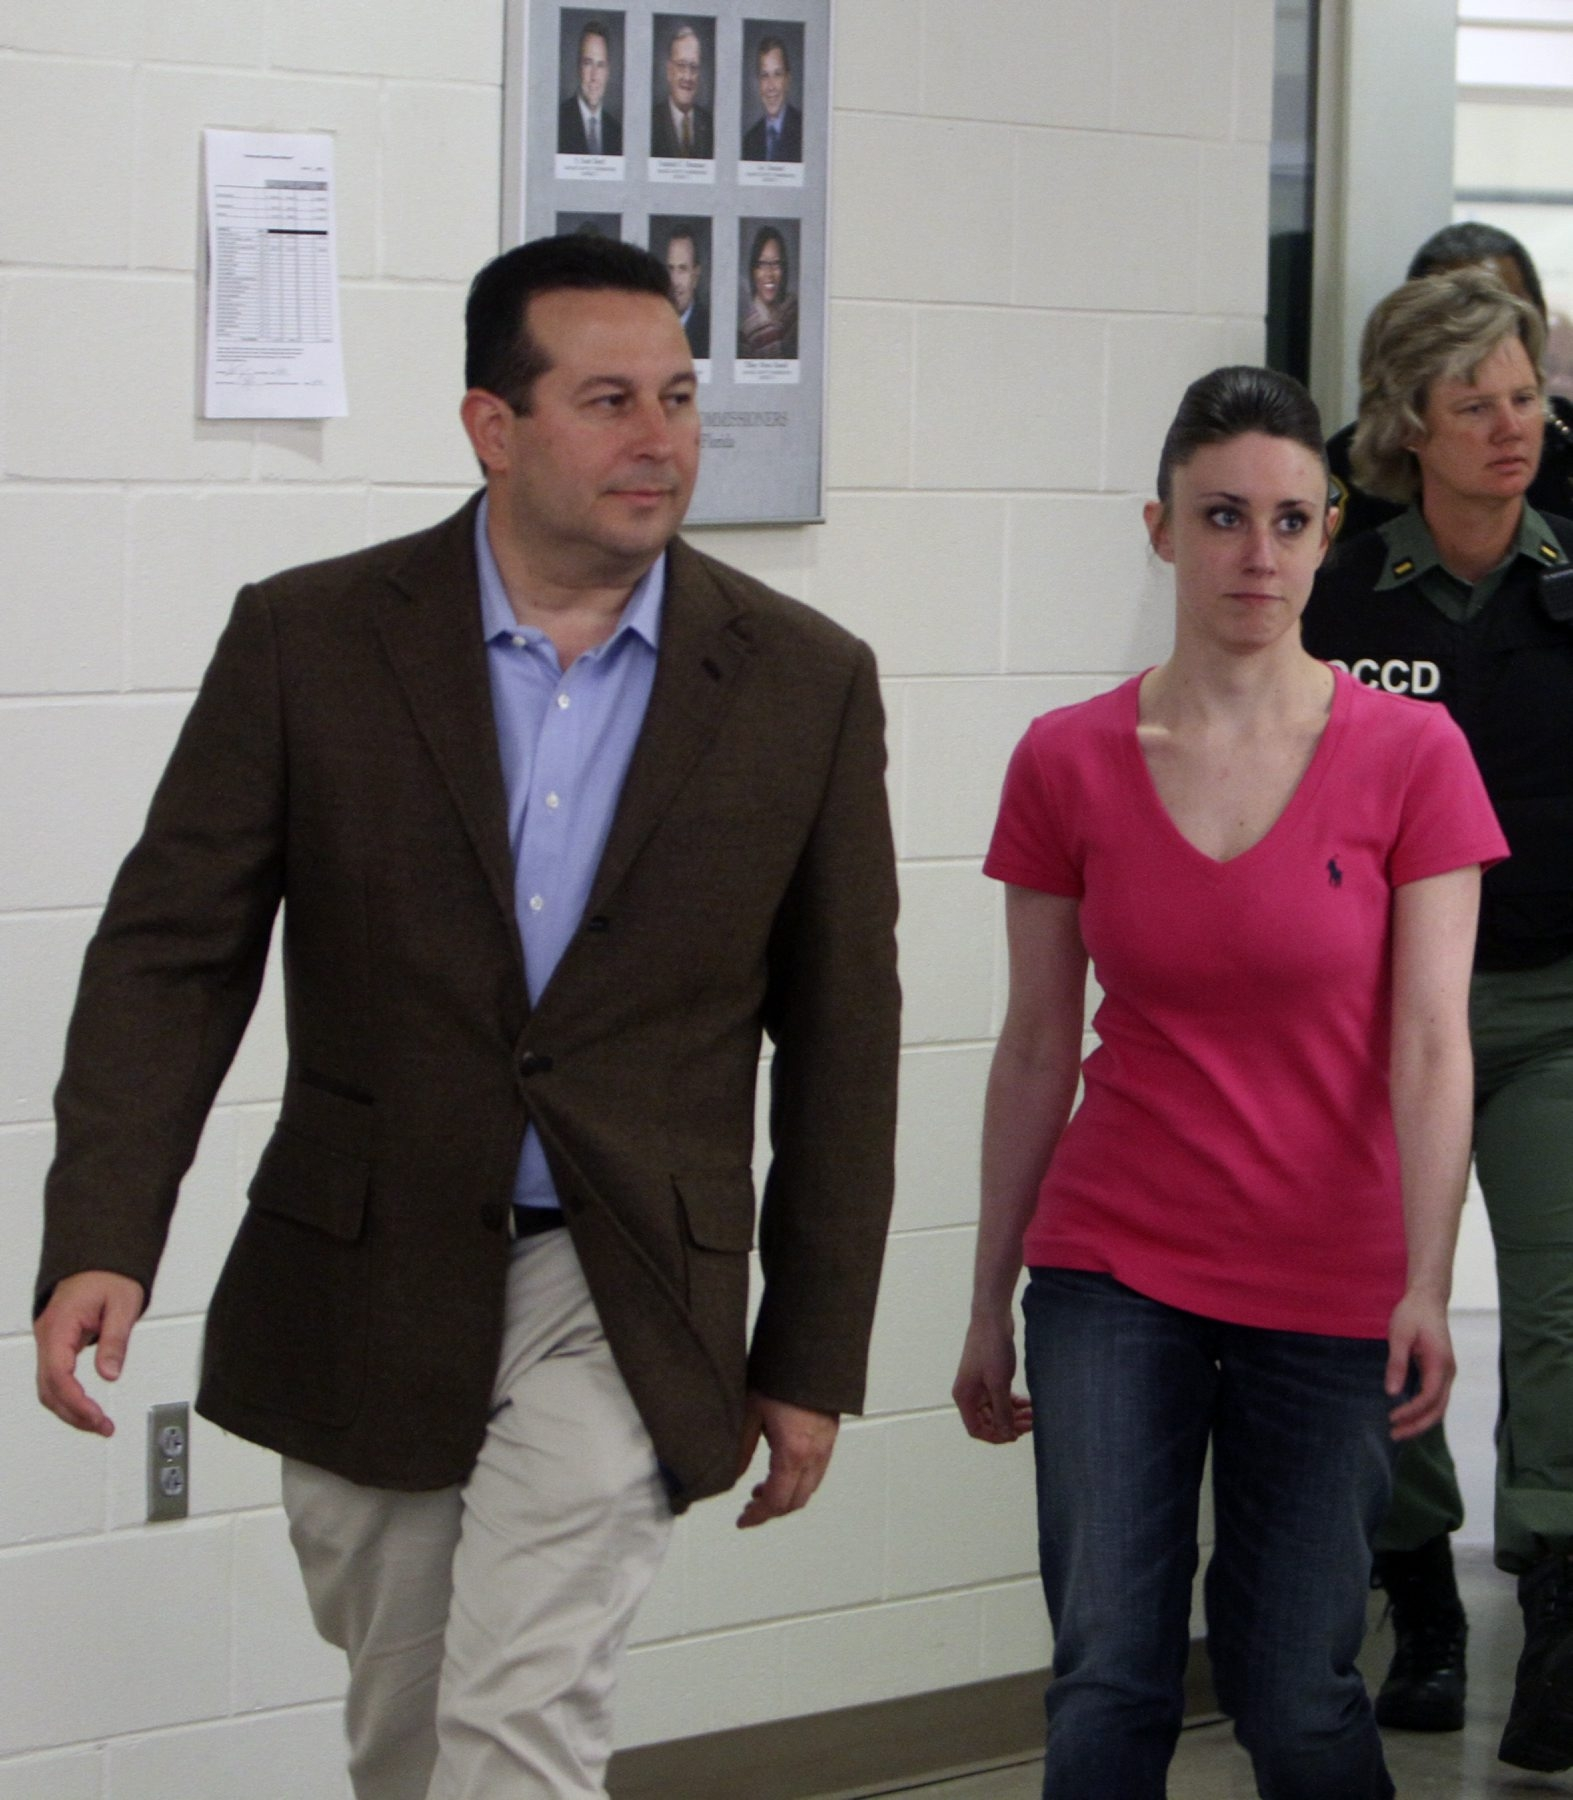 Jose Baez was able to discredit forensic evidence in the murder trial of Casey Anthony, right.